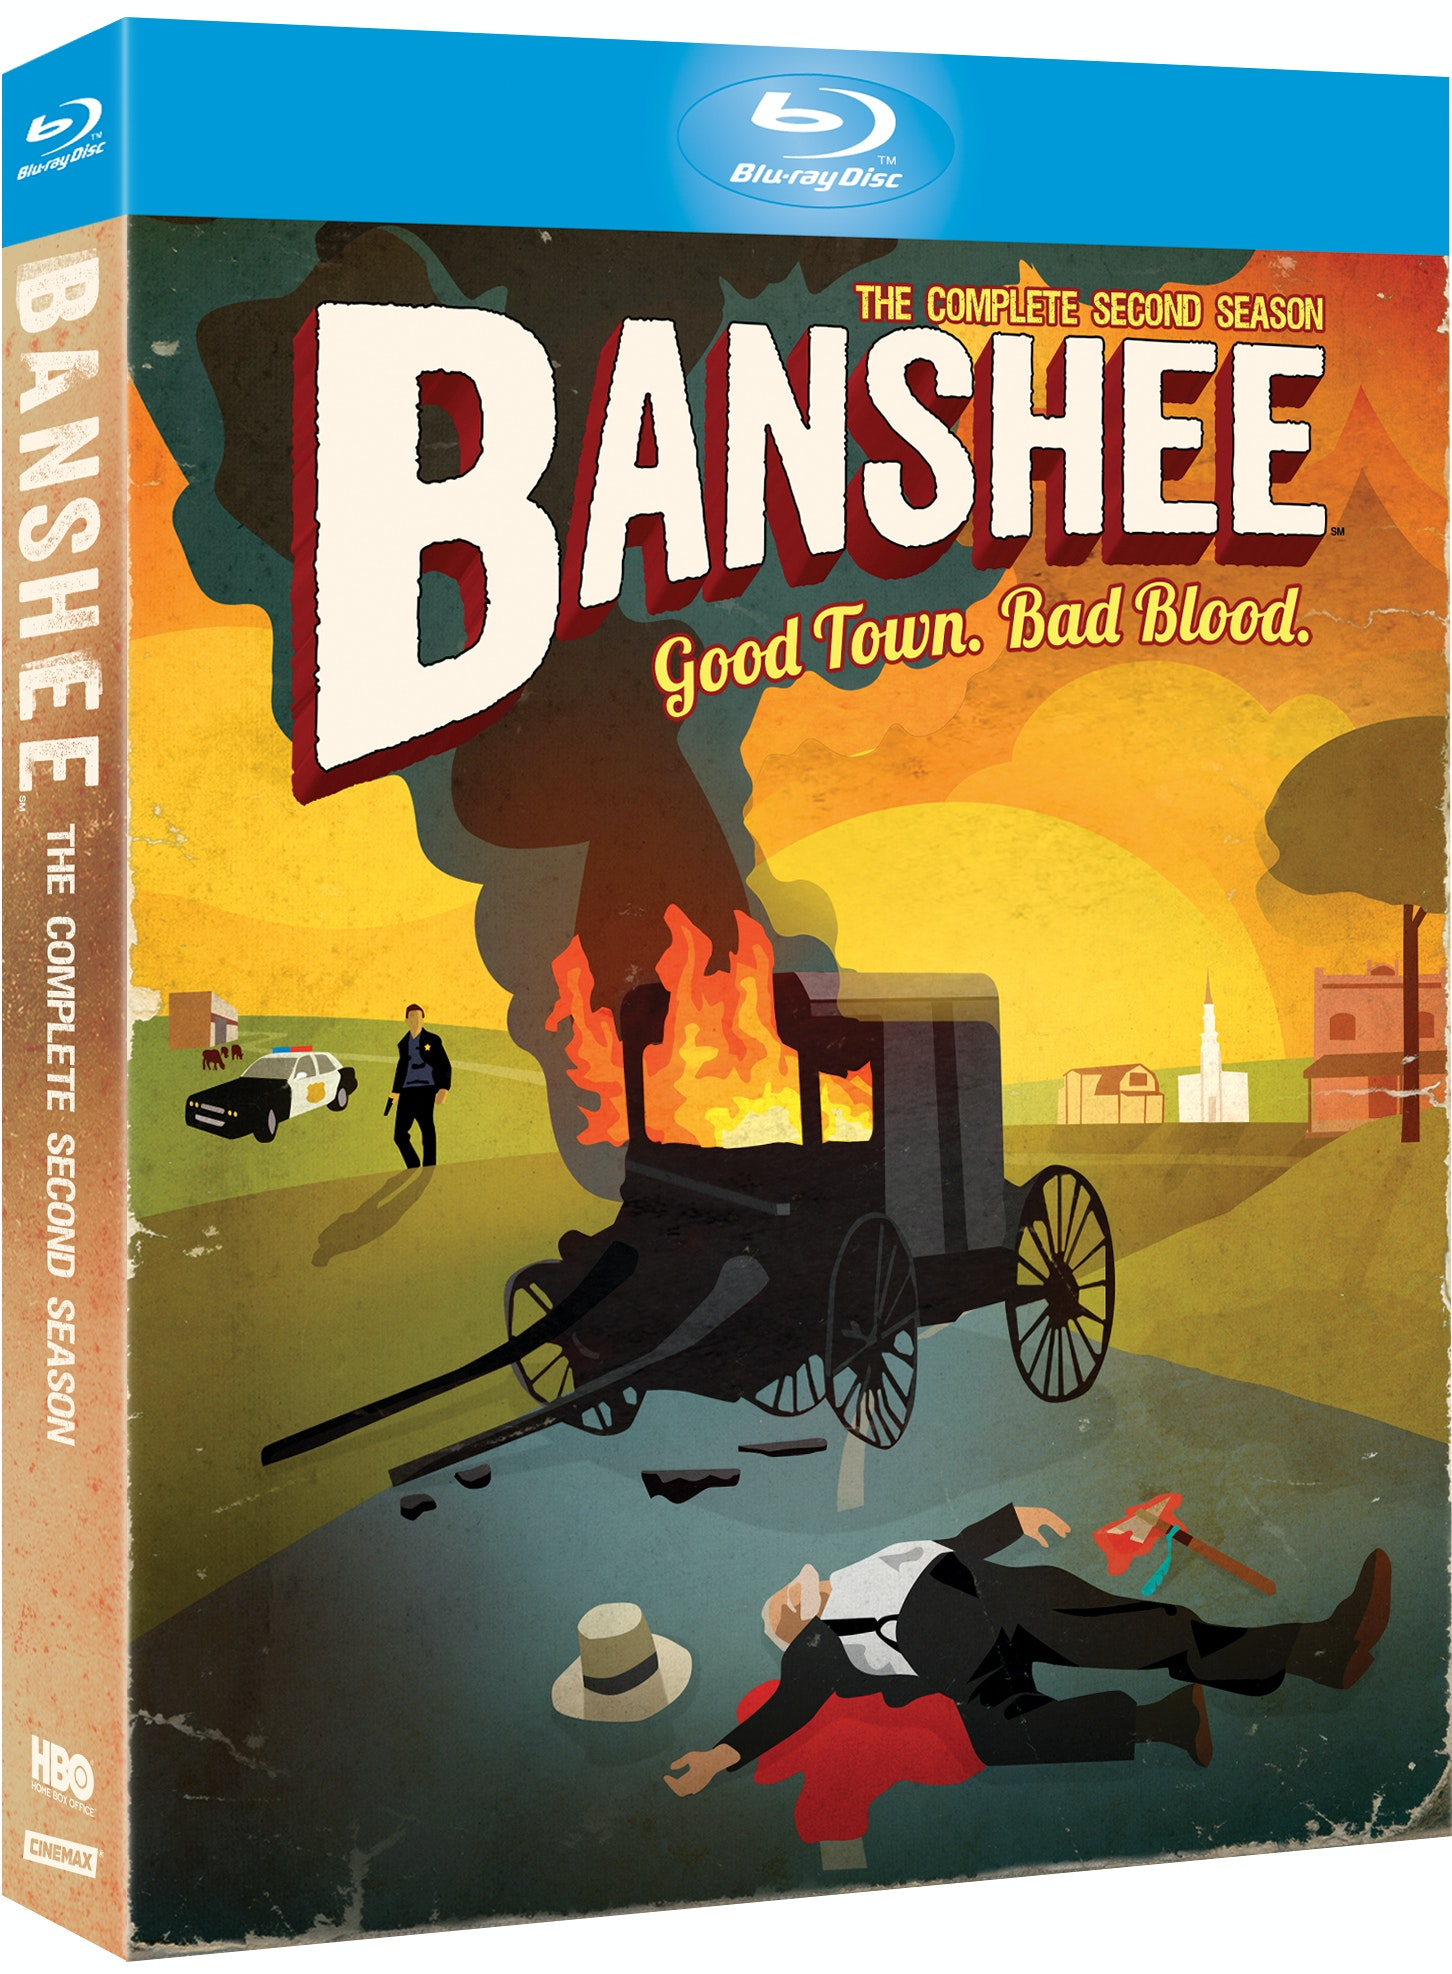 BANSHEE: THE COMPLETE SECOND SEASON sweepstakes